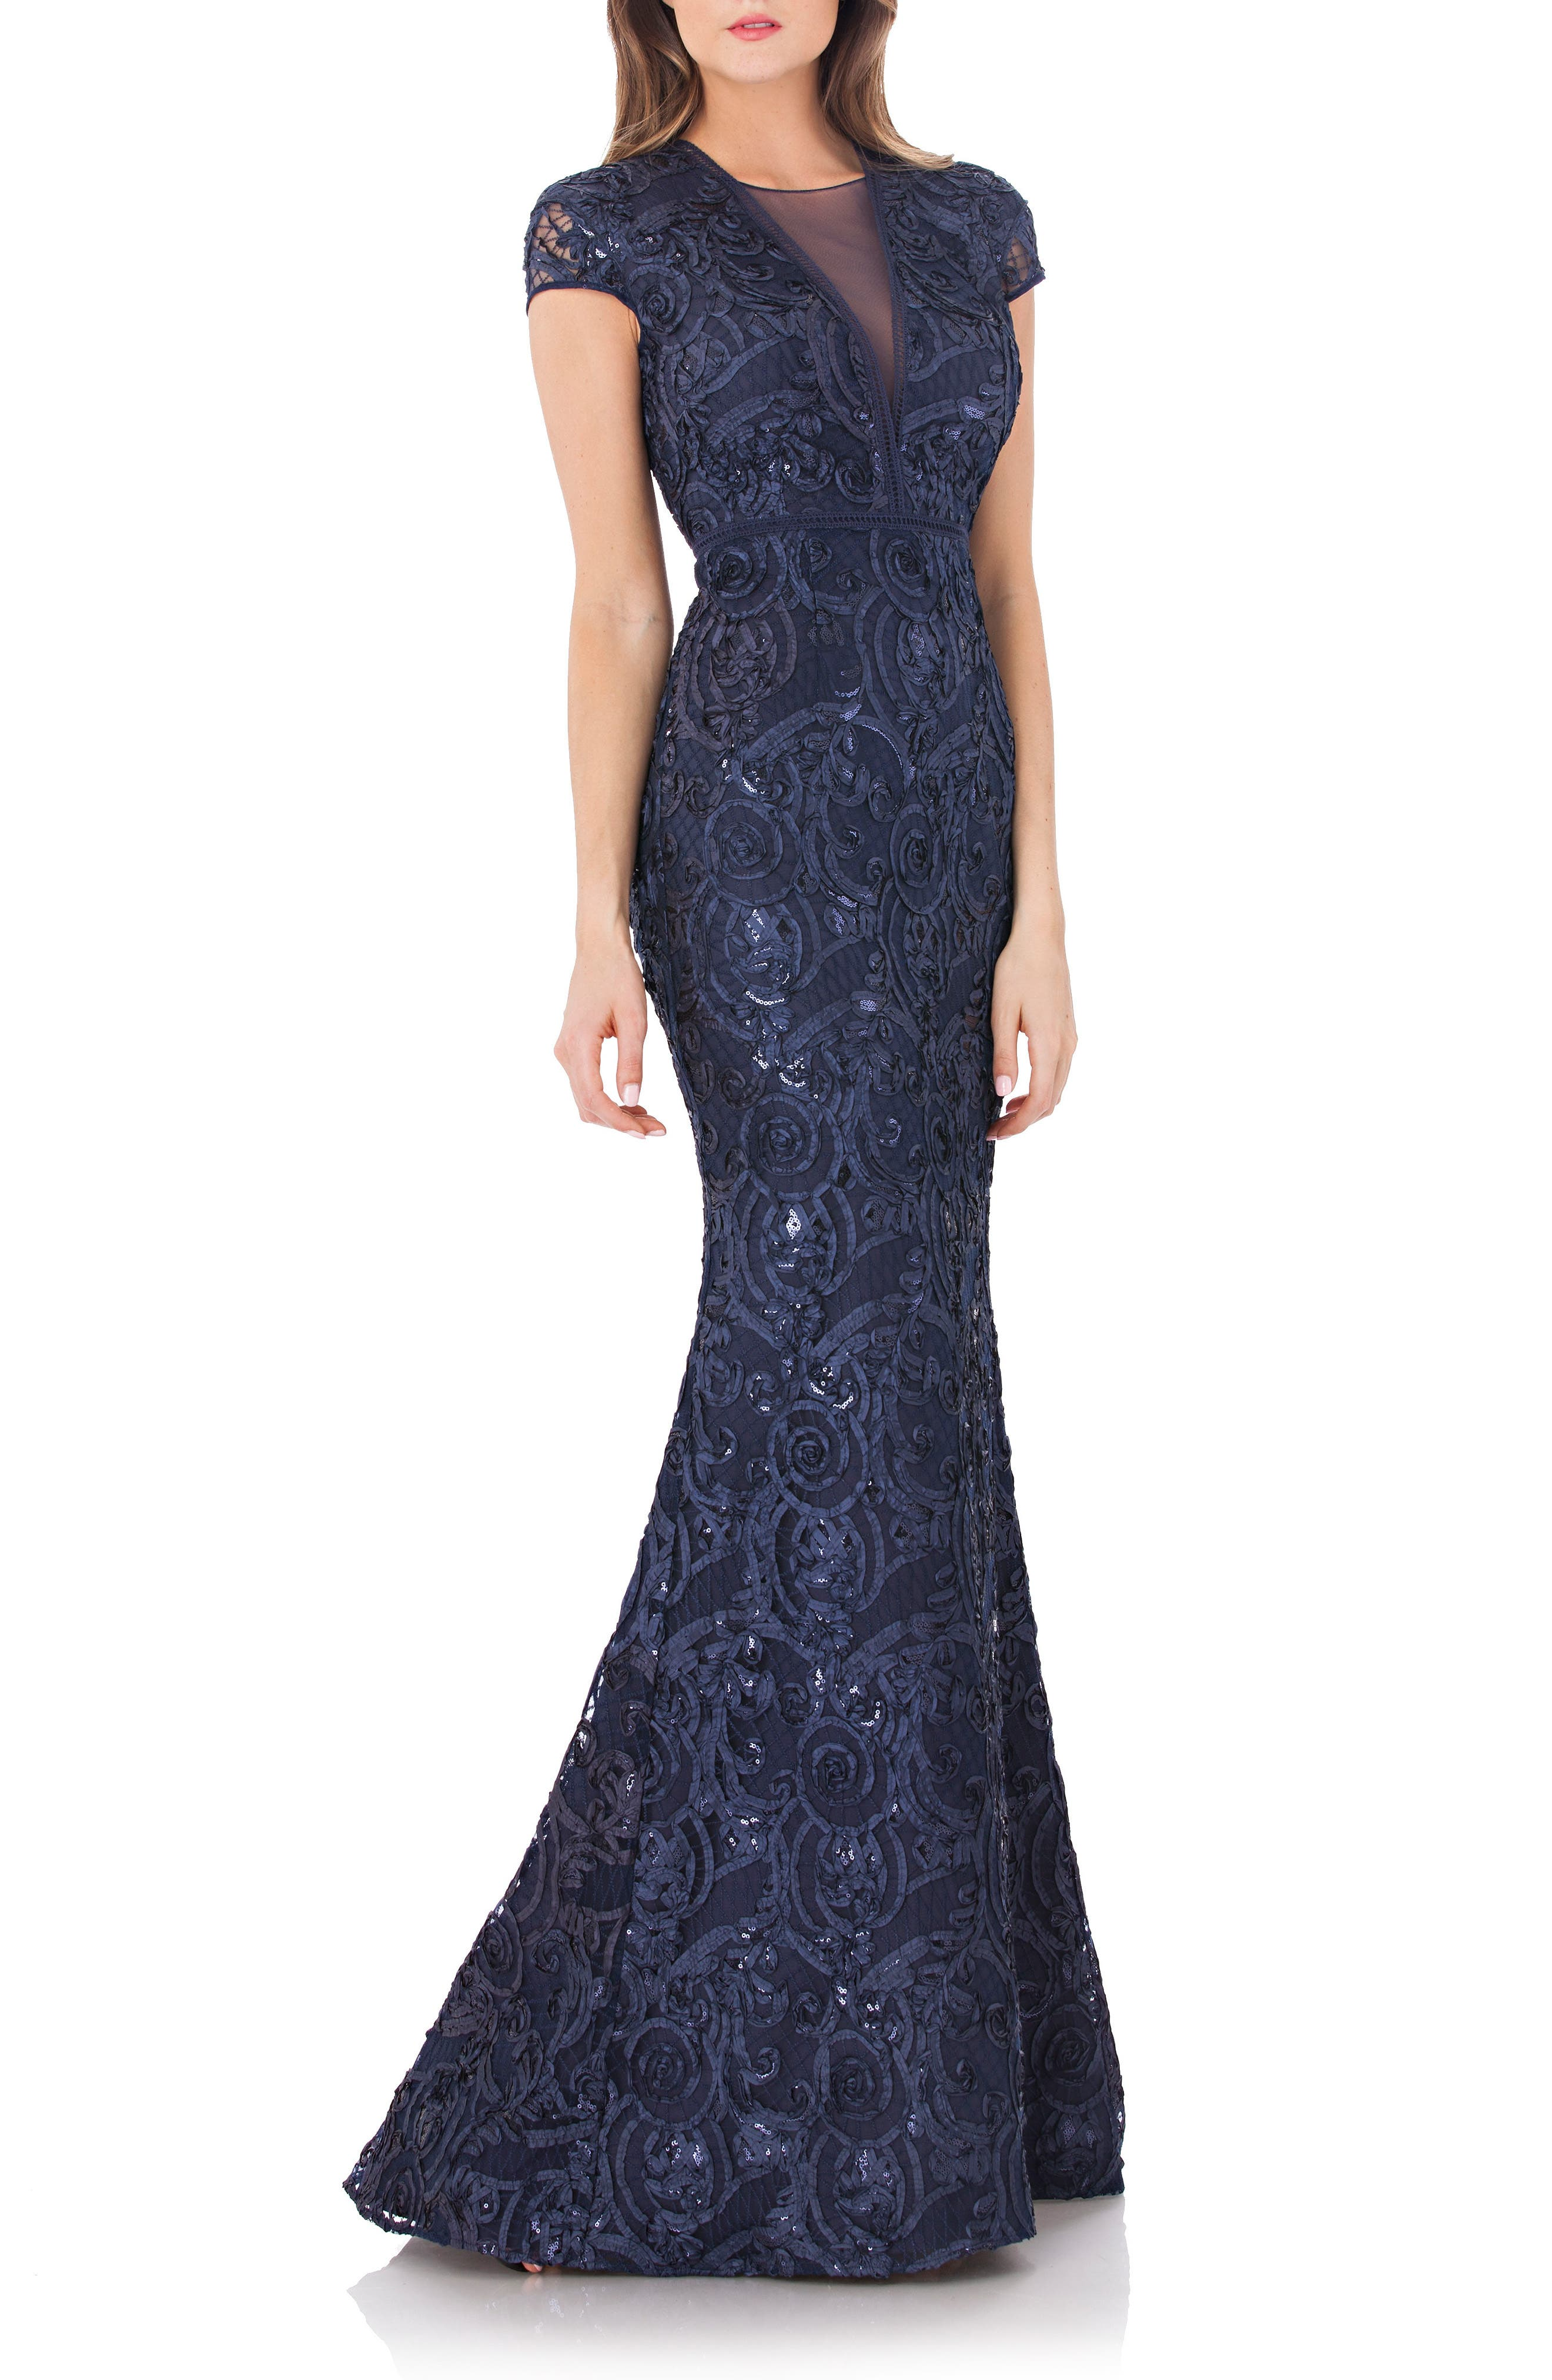 Alternate Image 1 Selected - Carmen Marc Valvo Infusion Embellished Soutache Mermaid Gown